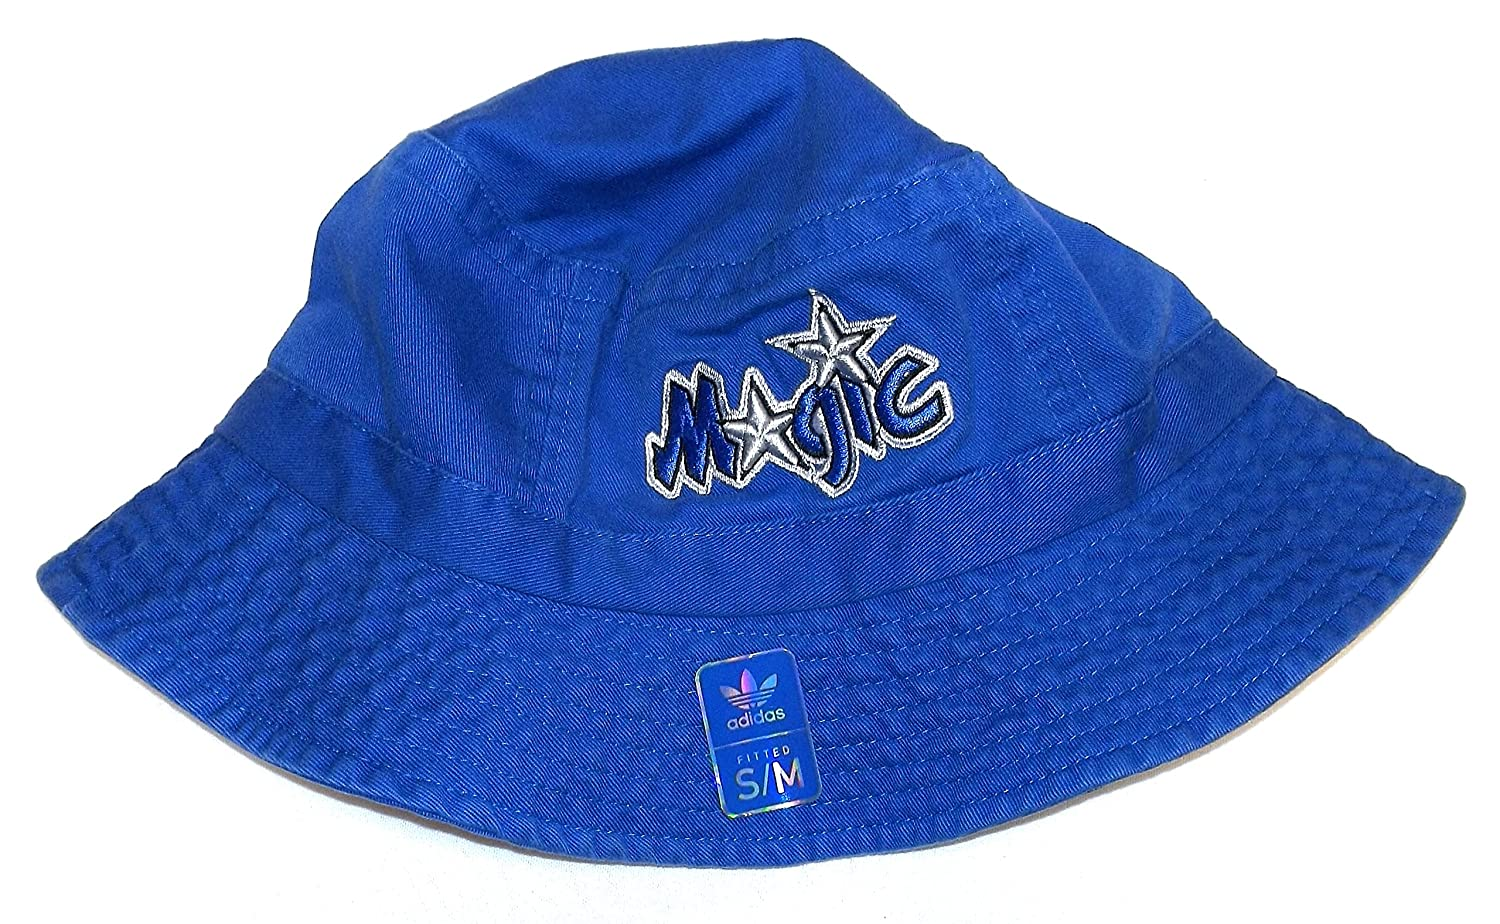 b5af3907c4 Amazon.com   NBA Hardwood Classics Orlando Magic Bucket Hat S M by Adidas    Sports   Outdoors